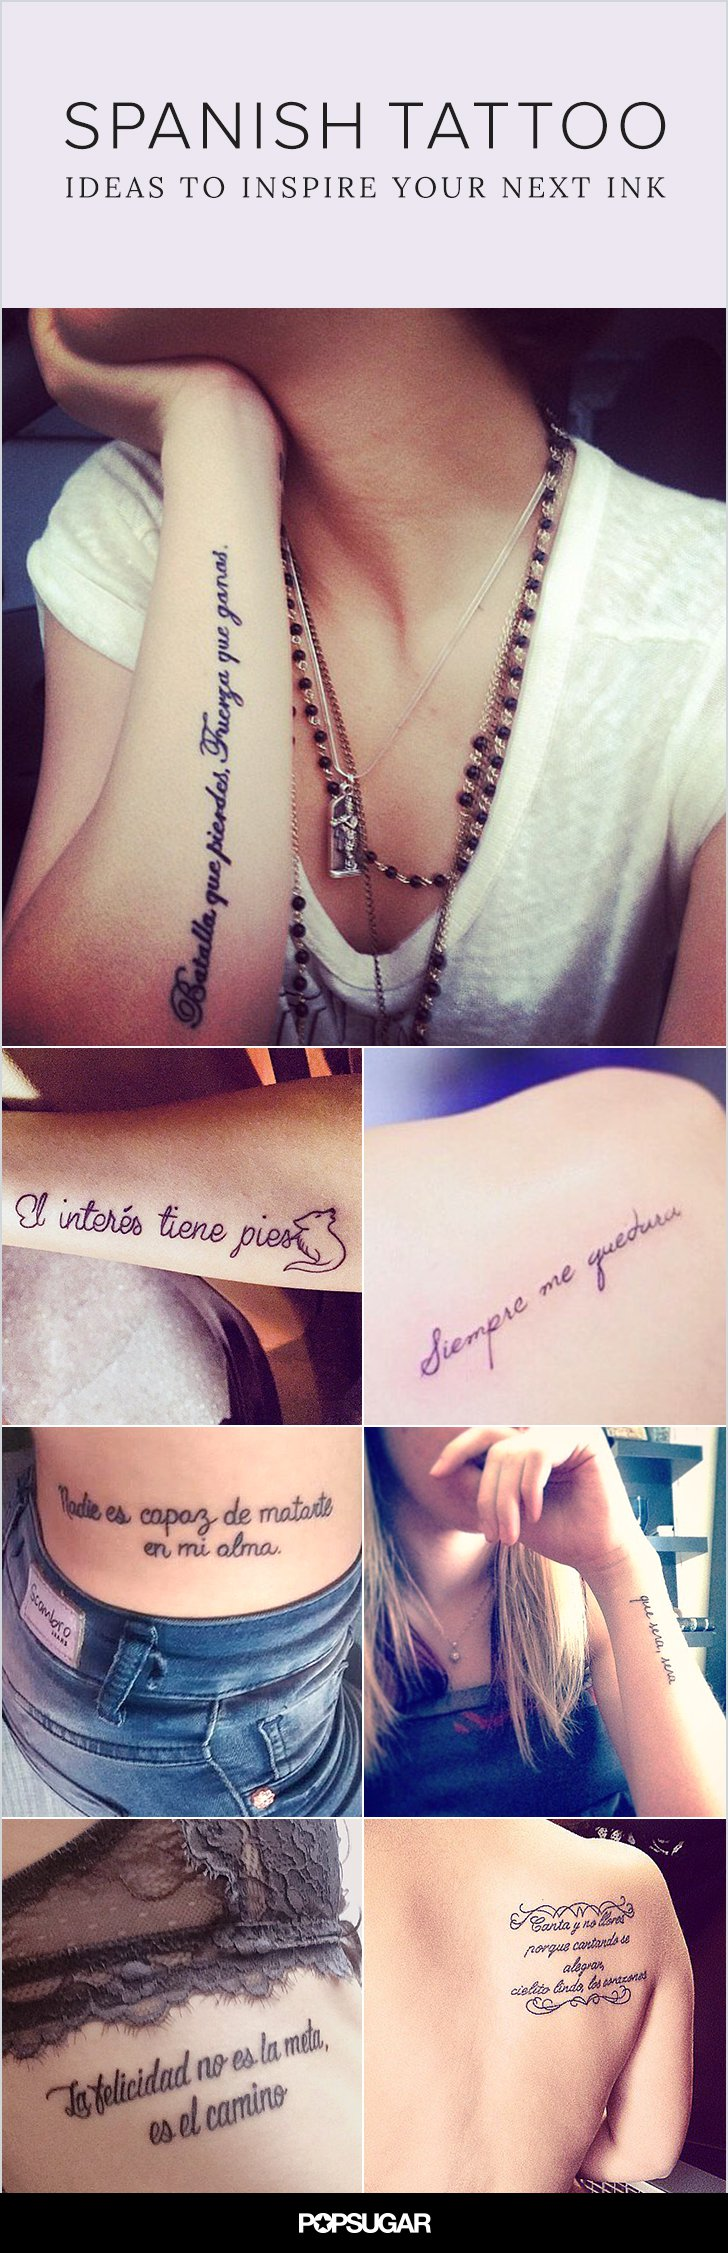 Meaningful Tattoos in Spanish Youull Want Immediately